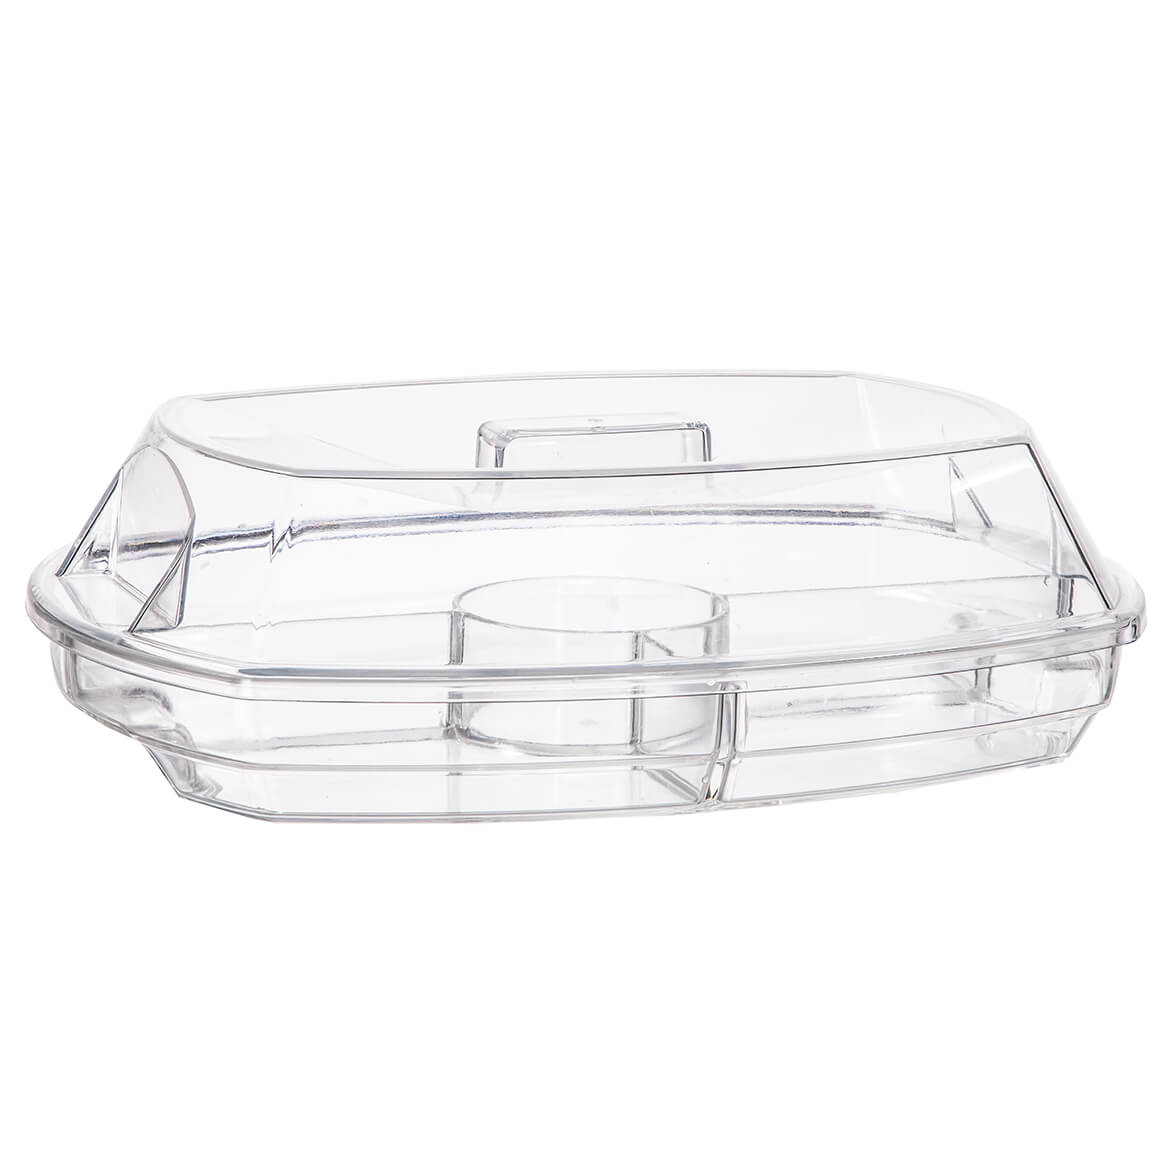 2-in-1 Iced Food Server-365889